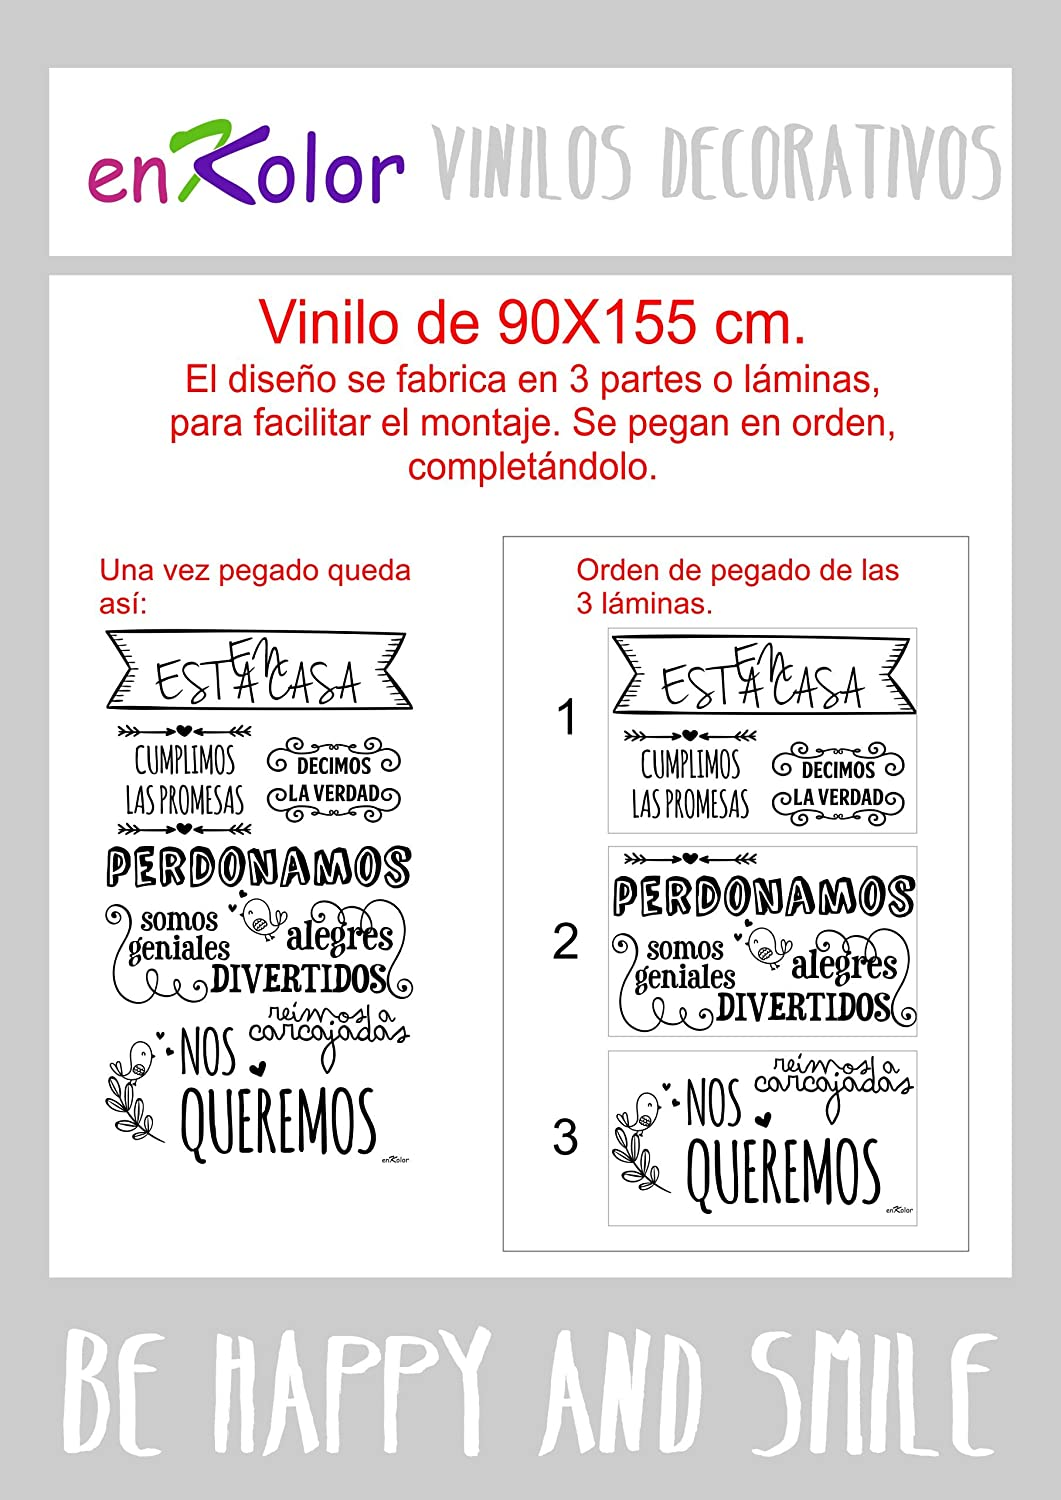 Enkolor Vinilos decorativos frases Normas casa/Pegatinas pared/Blanco/90X155cm. Color blanco: Amazon.es: Hogar